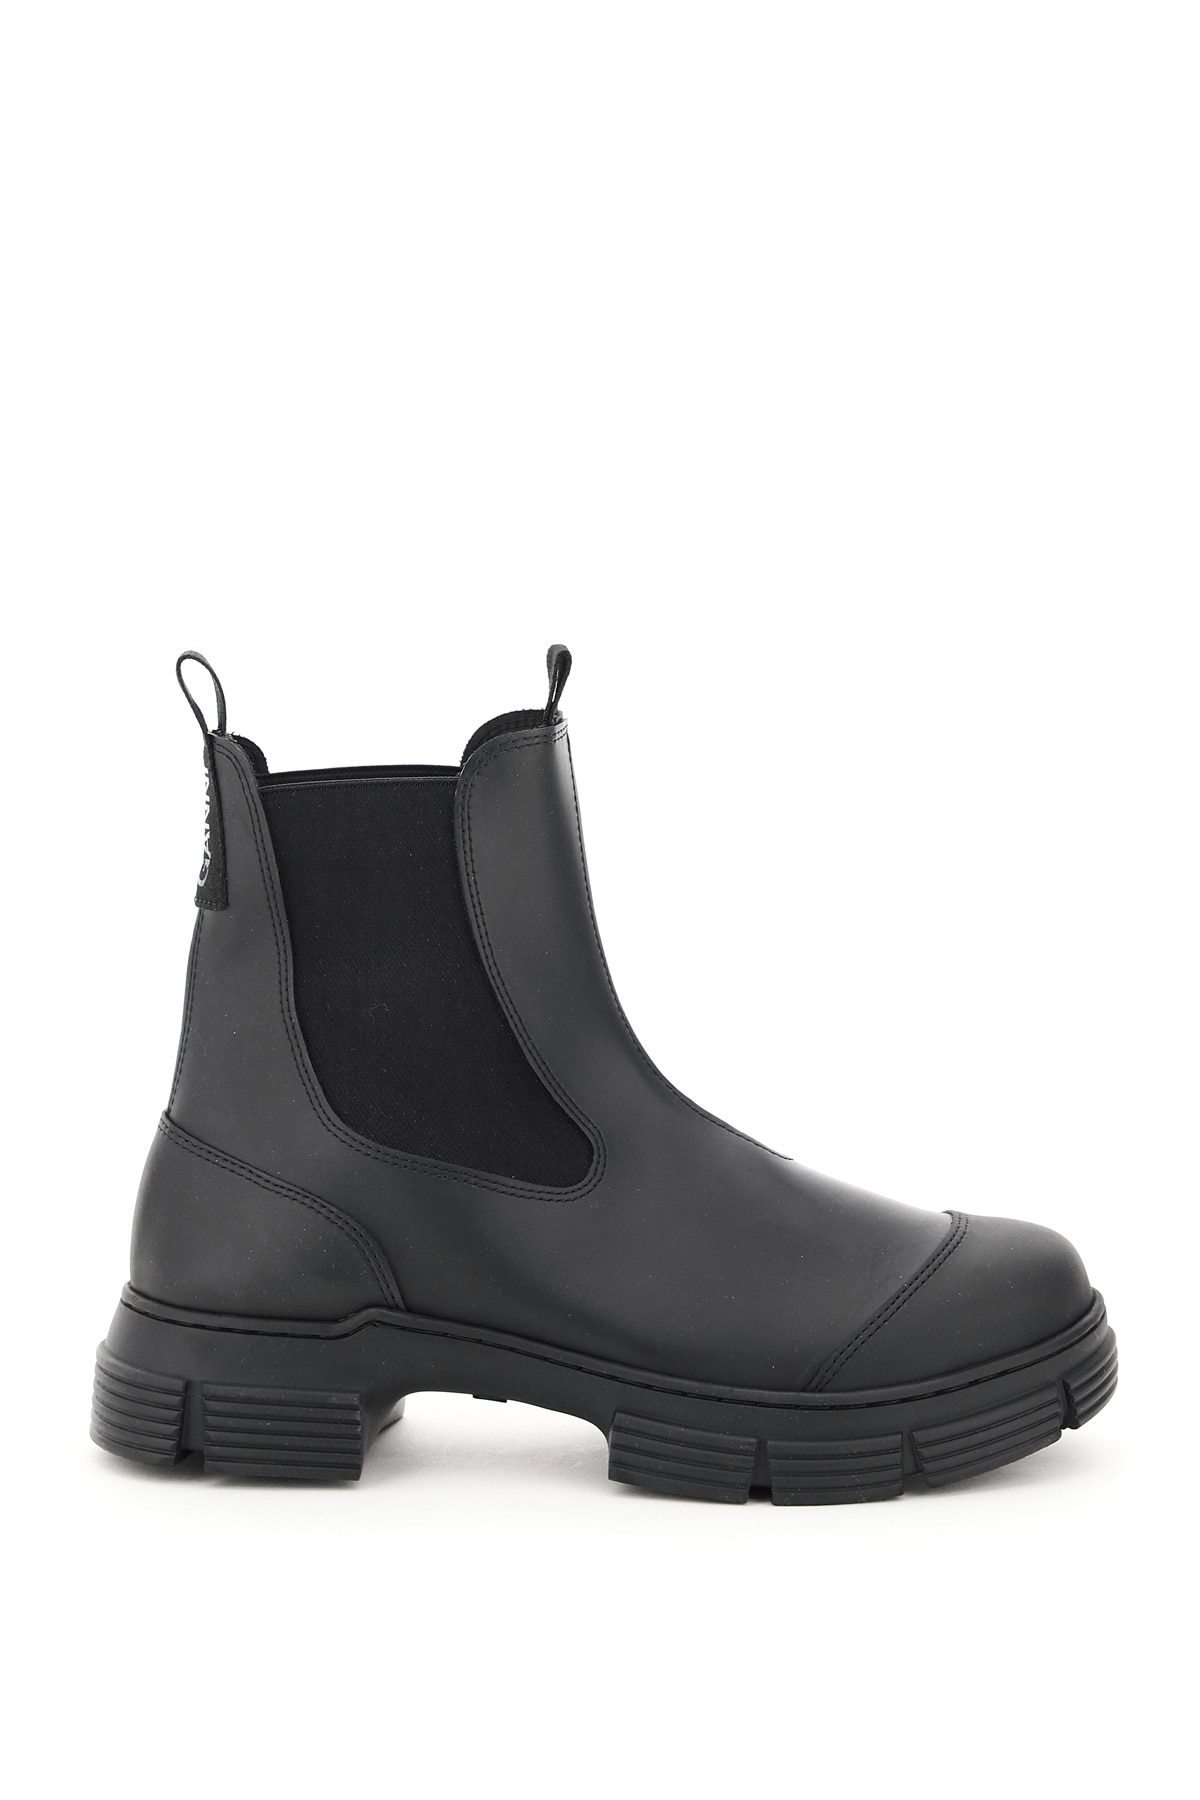 Ganni Recycled Rubber Chelsea Boots 38 Black